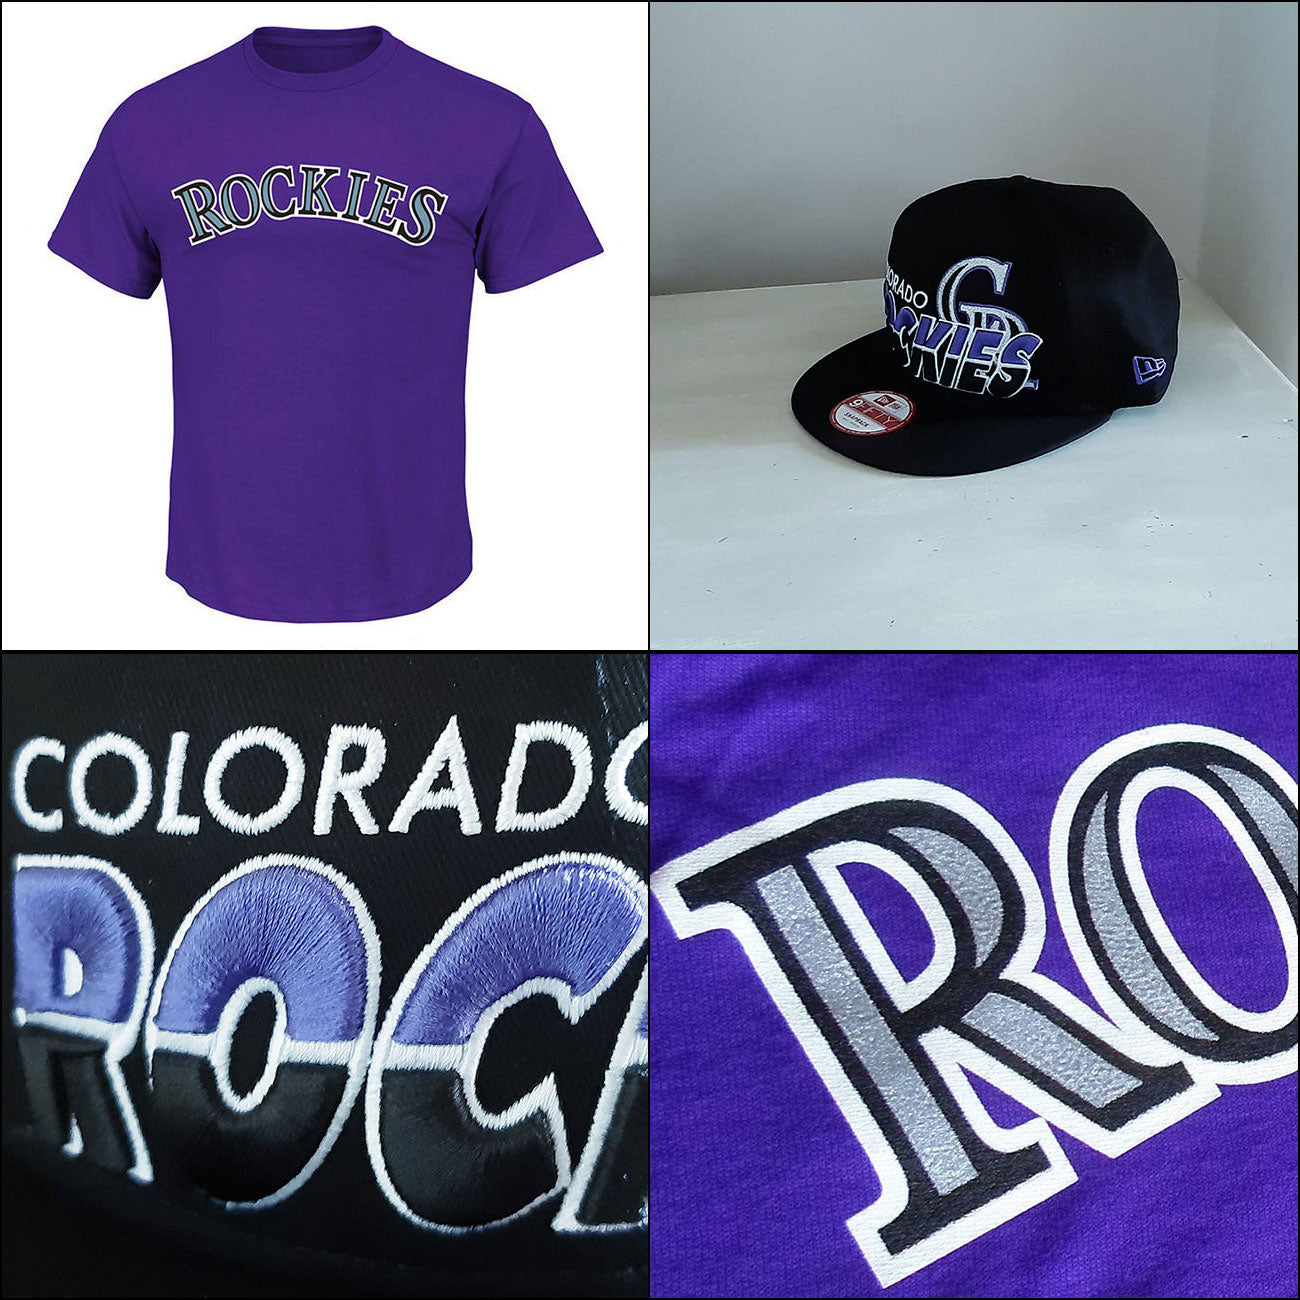 Colorado Rockies T shirt PLUS New Era 9FIFTY Adjustable Cap size - small/medum